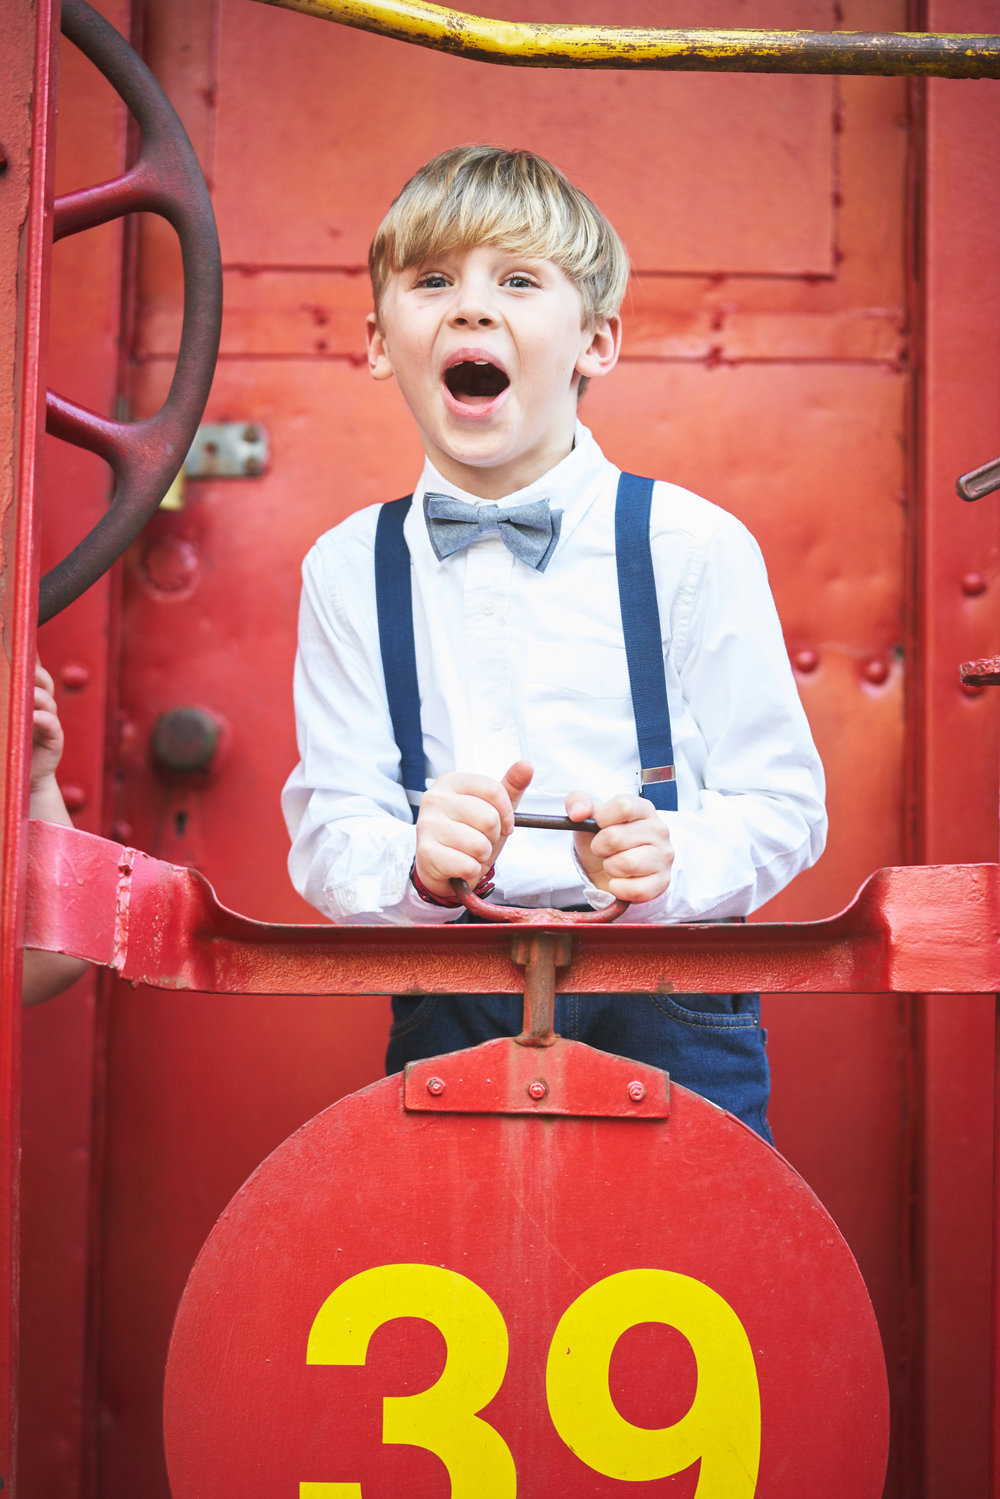 Boy on train| Family Photo Session at the Clemson Botanical Gardens